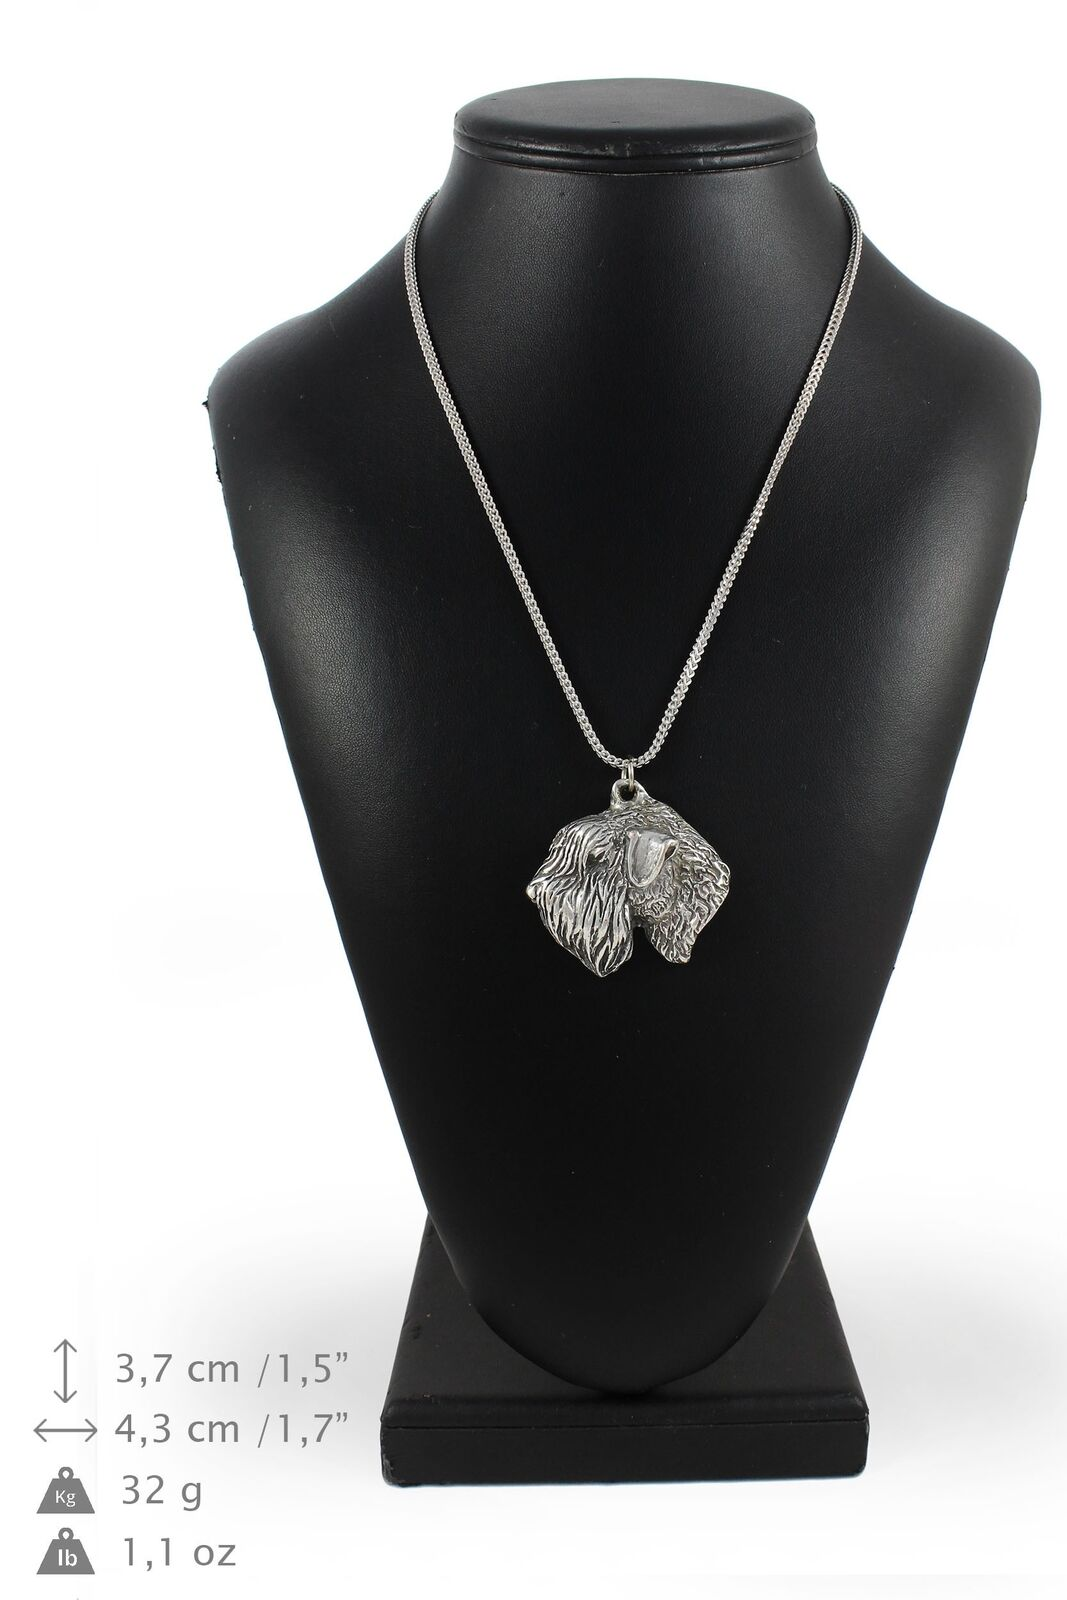 Irish Wheaten Terrier - Silber coverot necklace with Silber chain, Art Dog